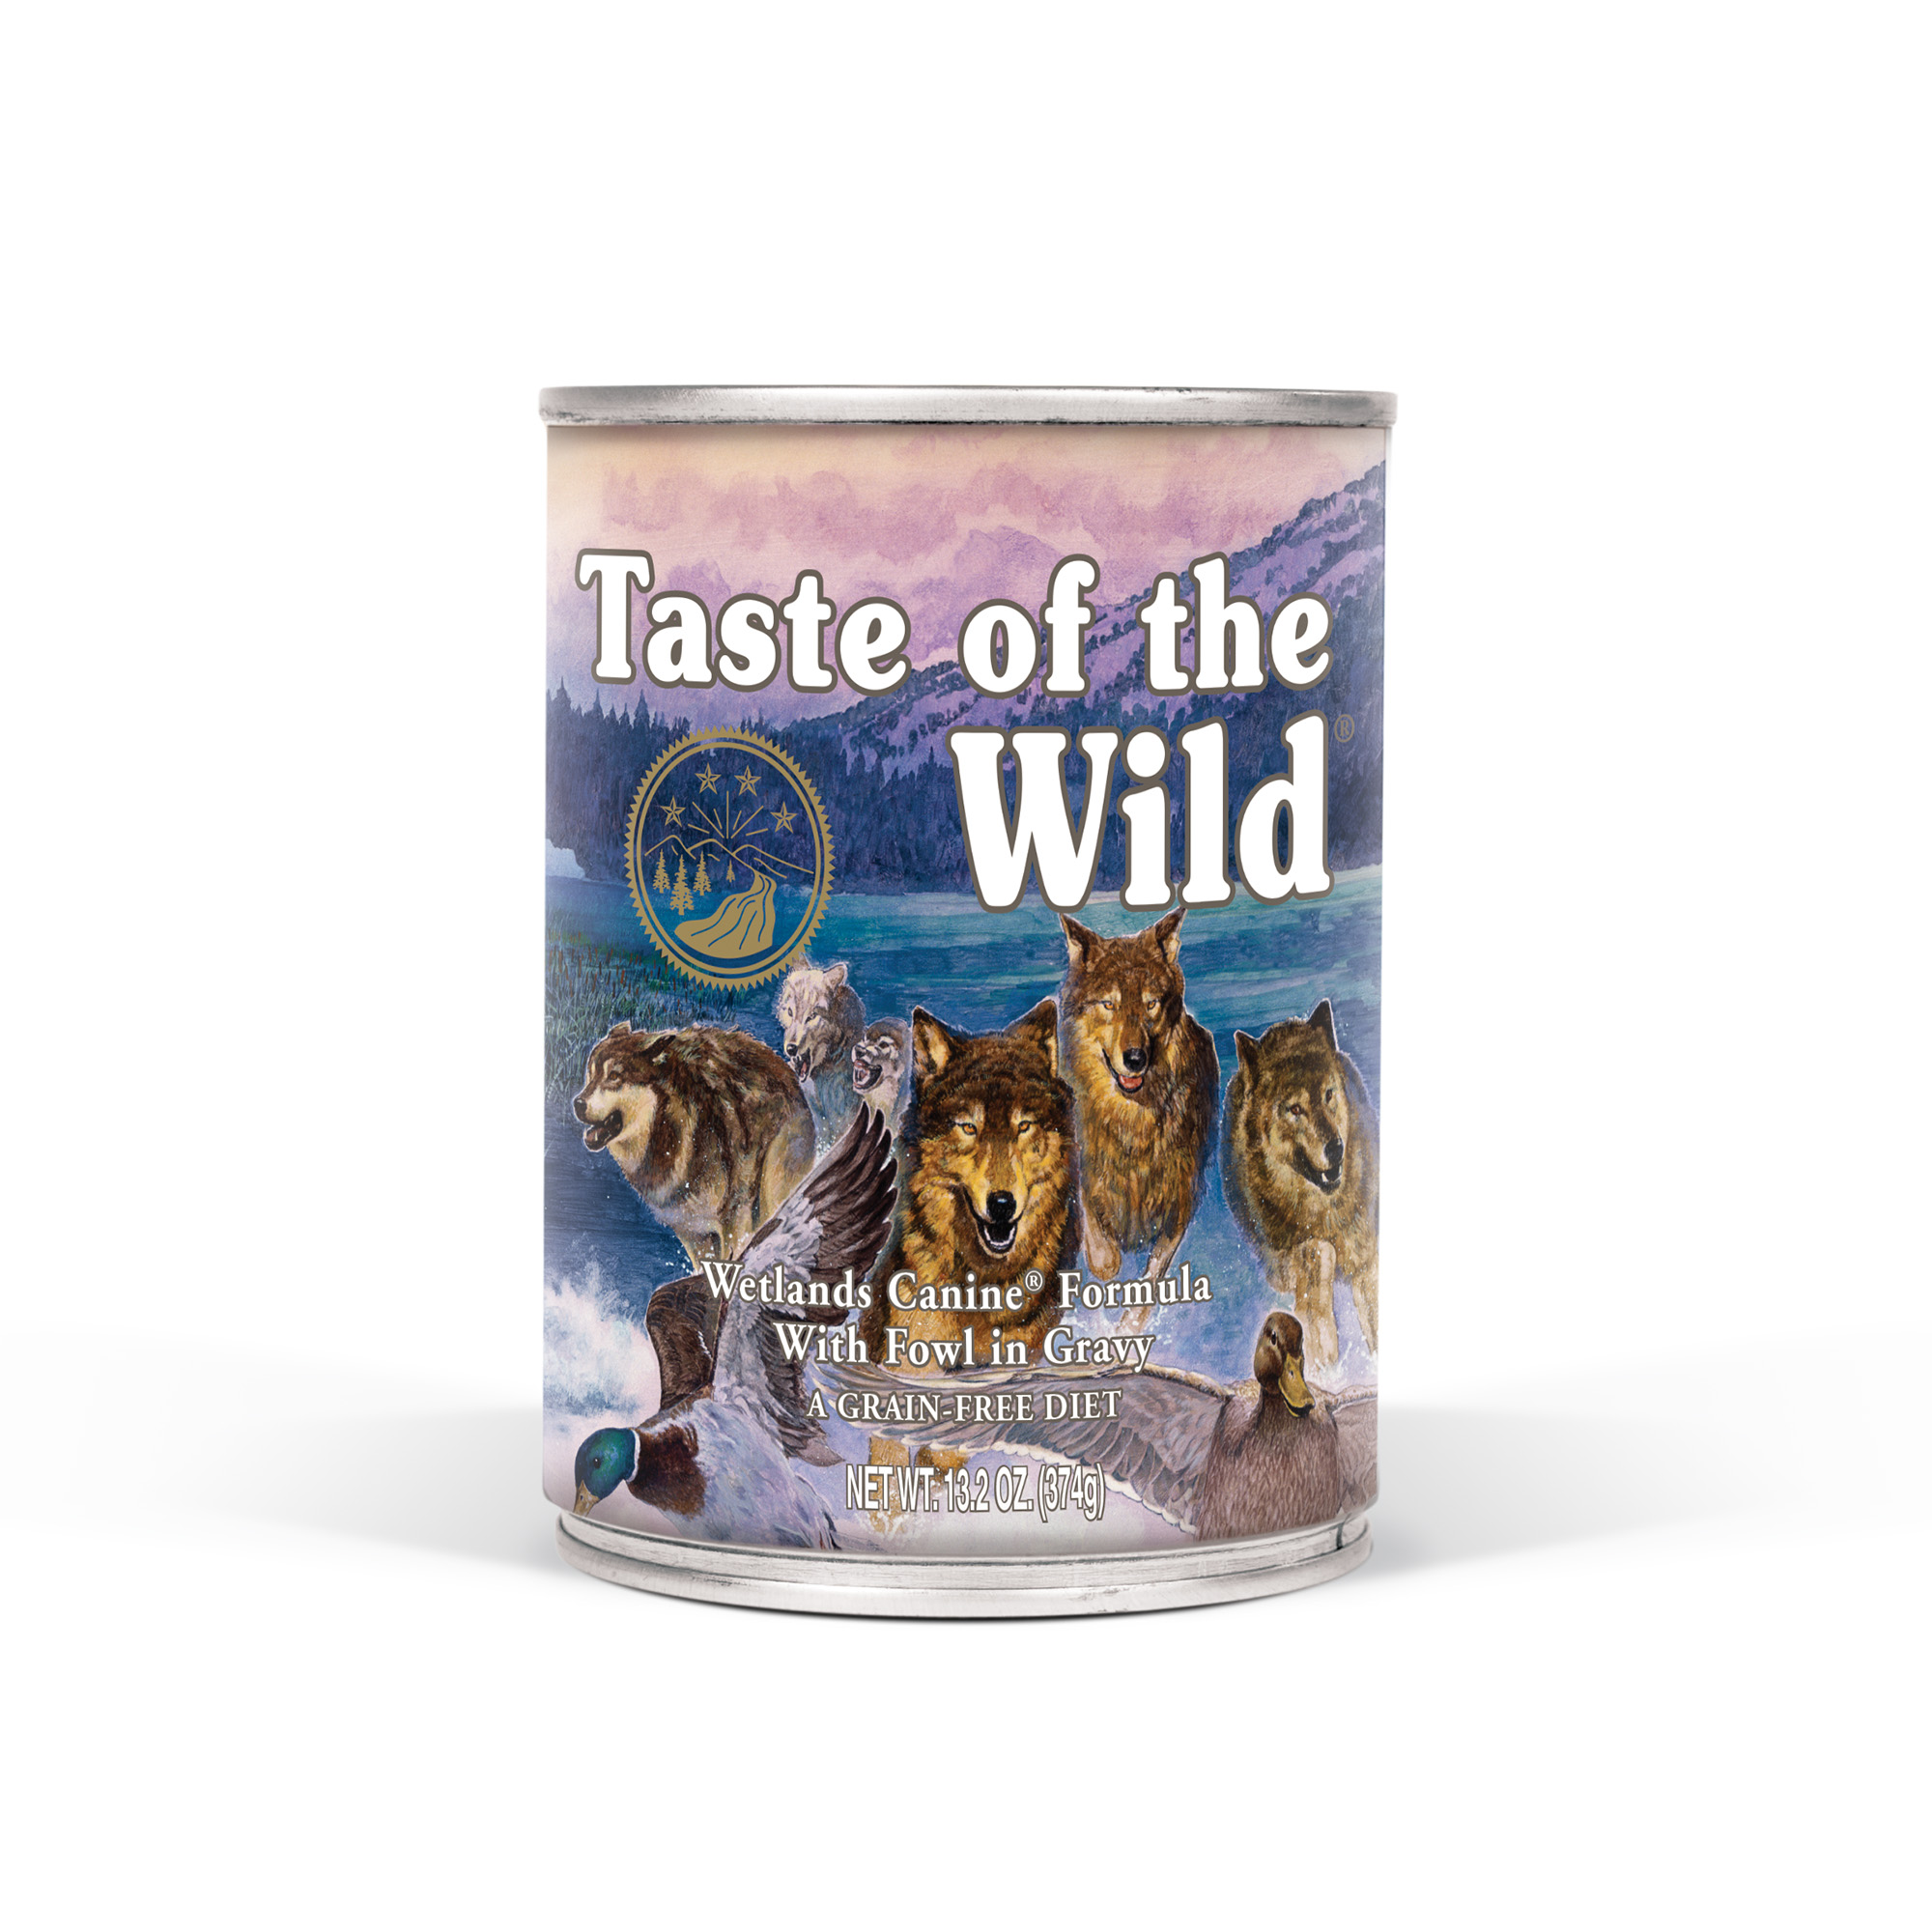 Taste of the Wild Wetlands Grain Free Wet Canned Dog Food with Roasted Duck 13.2oz, Case of 12